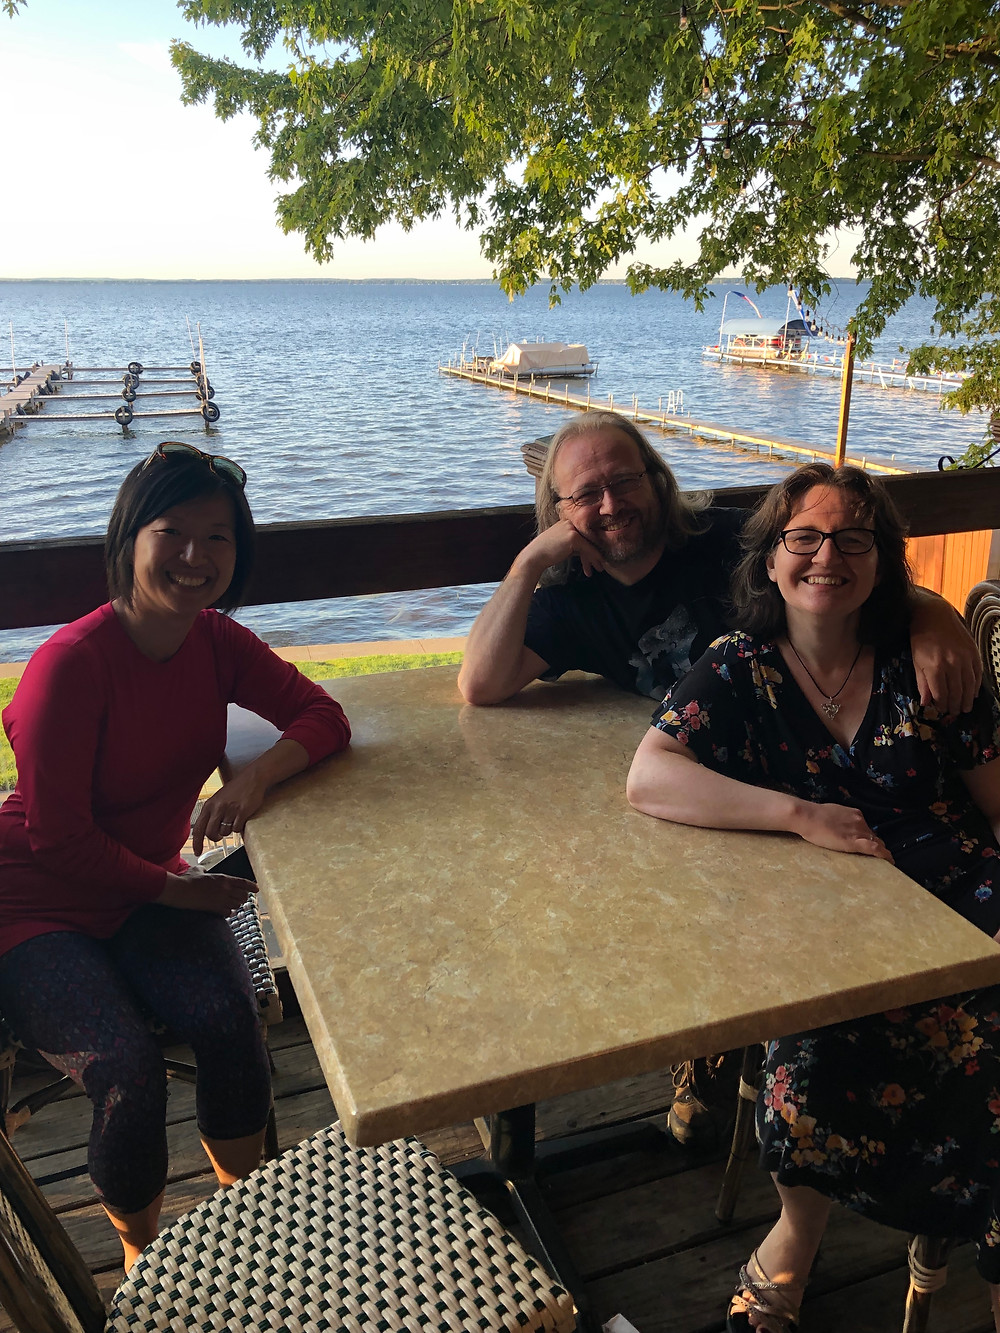 Y.S. Lee, Patrick Samphire, and Stephanie Burgis at a restaurant on a lake